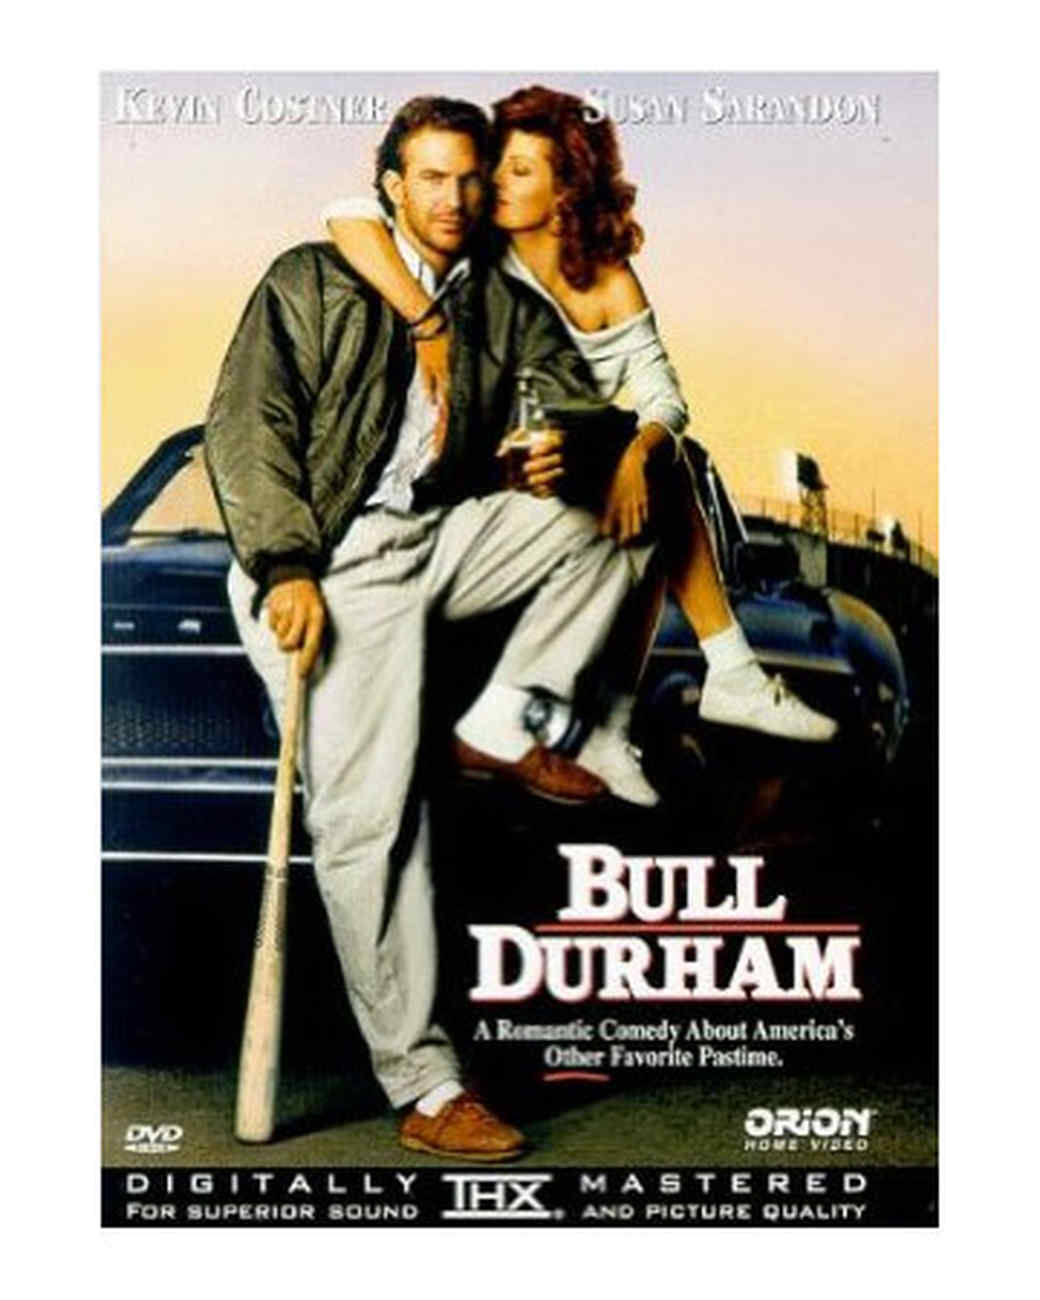 stock_movie_stills_bull_durham.jpg